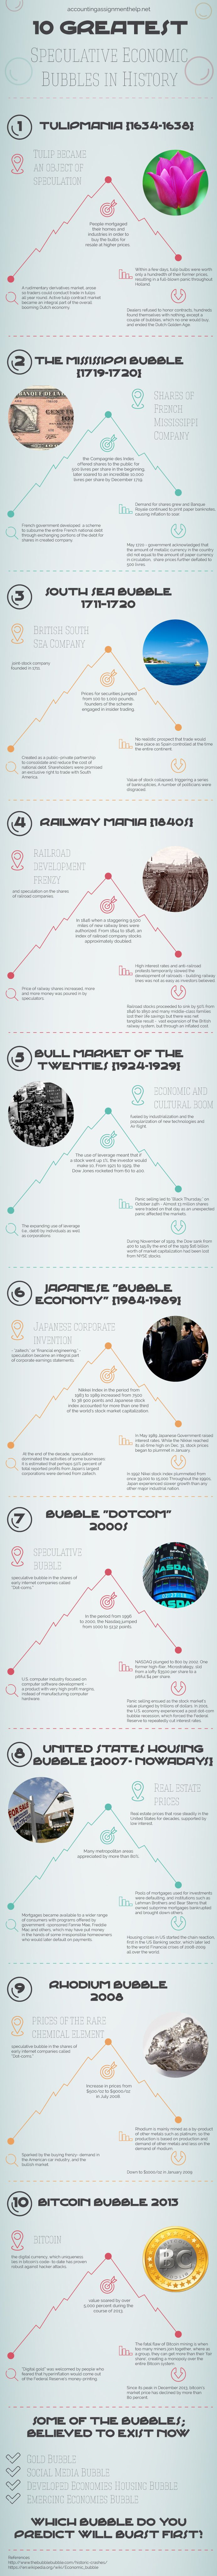 10 Greatest Economic Bubbles in History #infographic